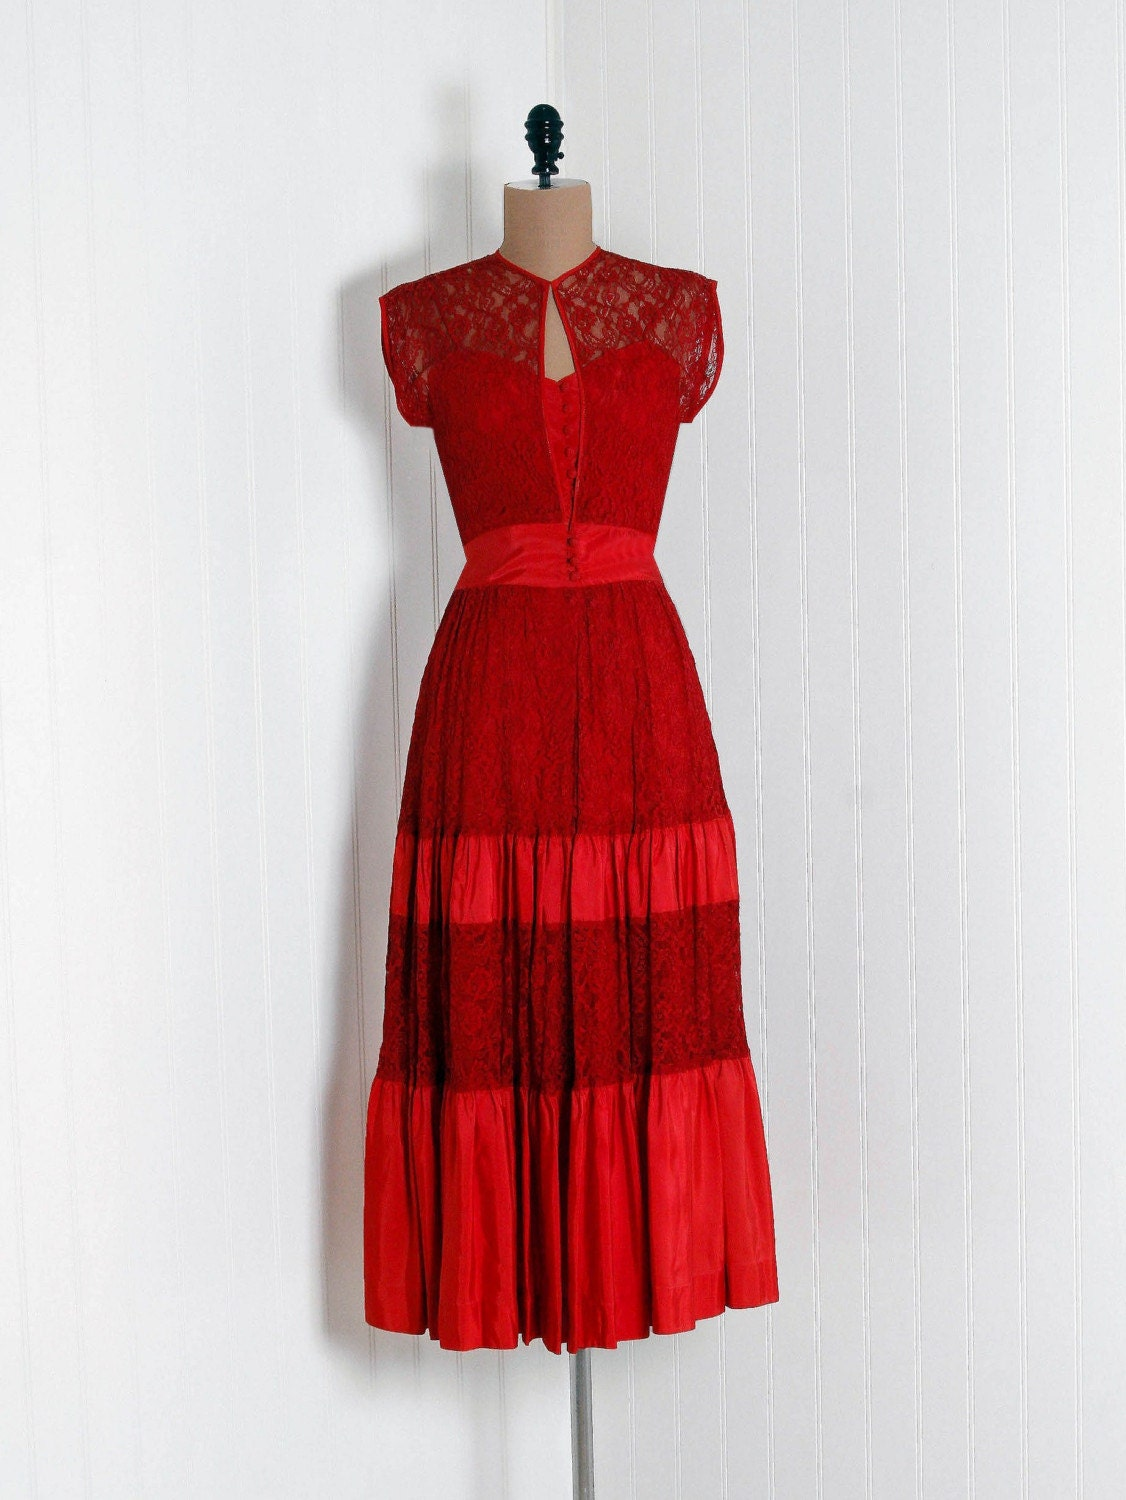 1940's  Vintage Seductive Ruby-Red Lace and Silk-Taffeta Sculpted  Designer-Couture Sweetheart Sheer-Illusion Plunge Nipped-Waist  Rockabilly Femme-Fatale Bombshell Swing-Skirt Noir Princess Formal  Wedding Evening Cocktail Party Dress